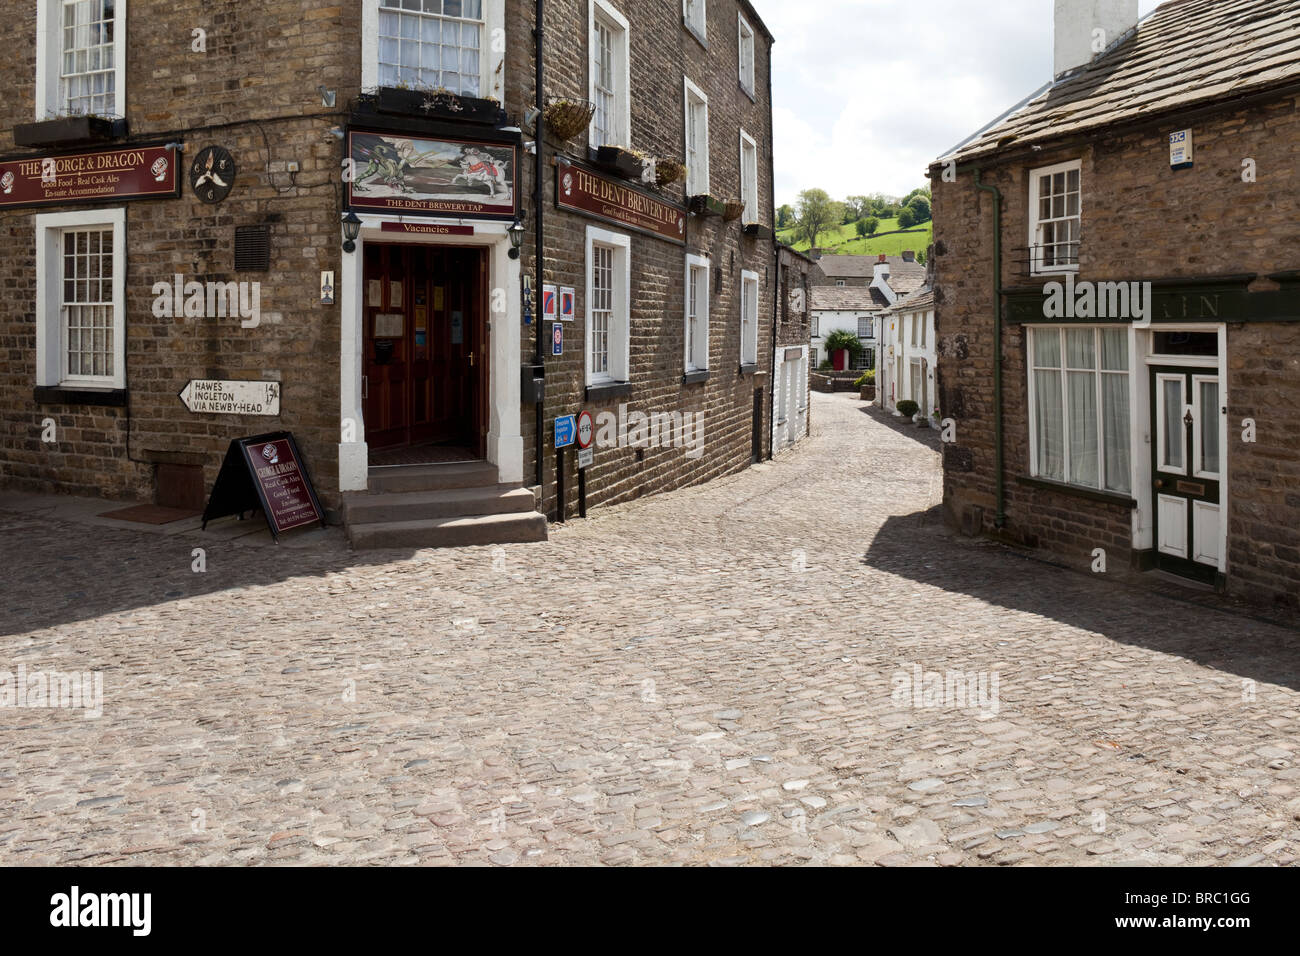 The cobbled Main Street of the Yorkshire Dales National Park village of Dent, Dentdale, Cumbria. - Stock Image